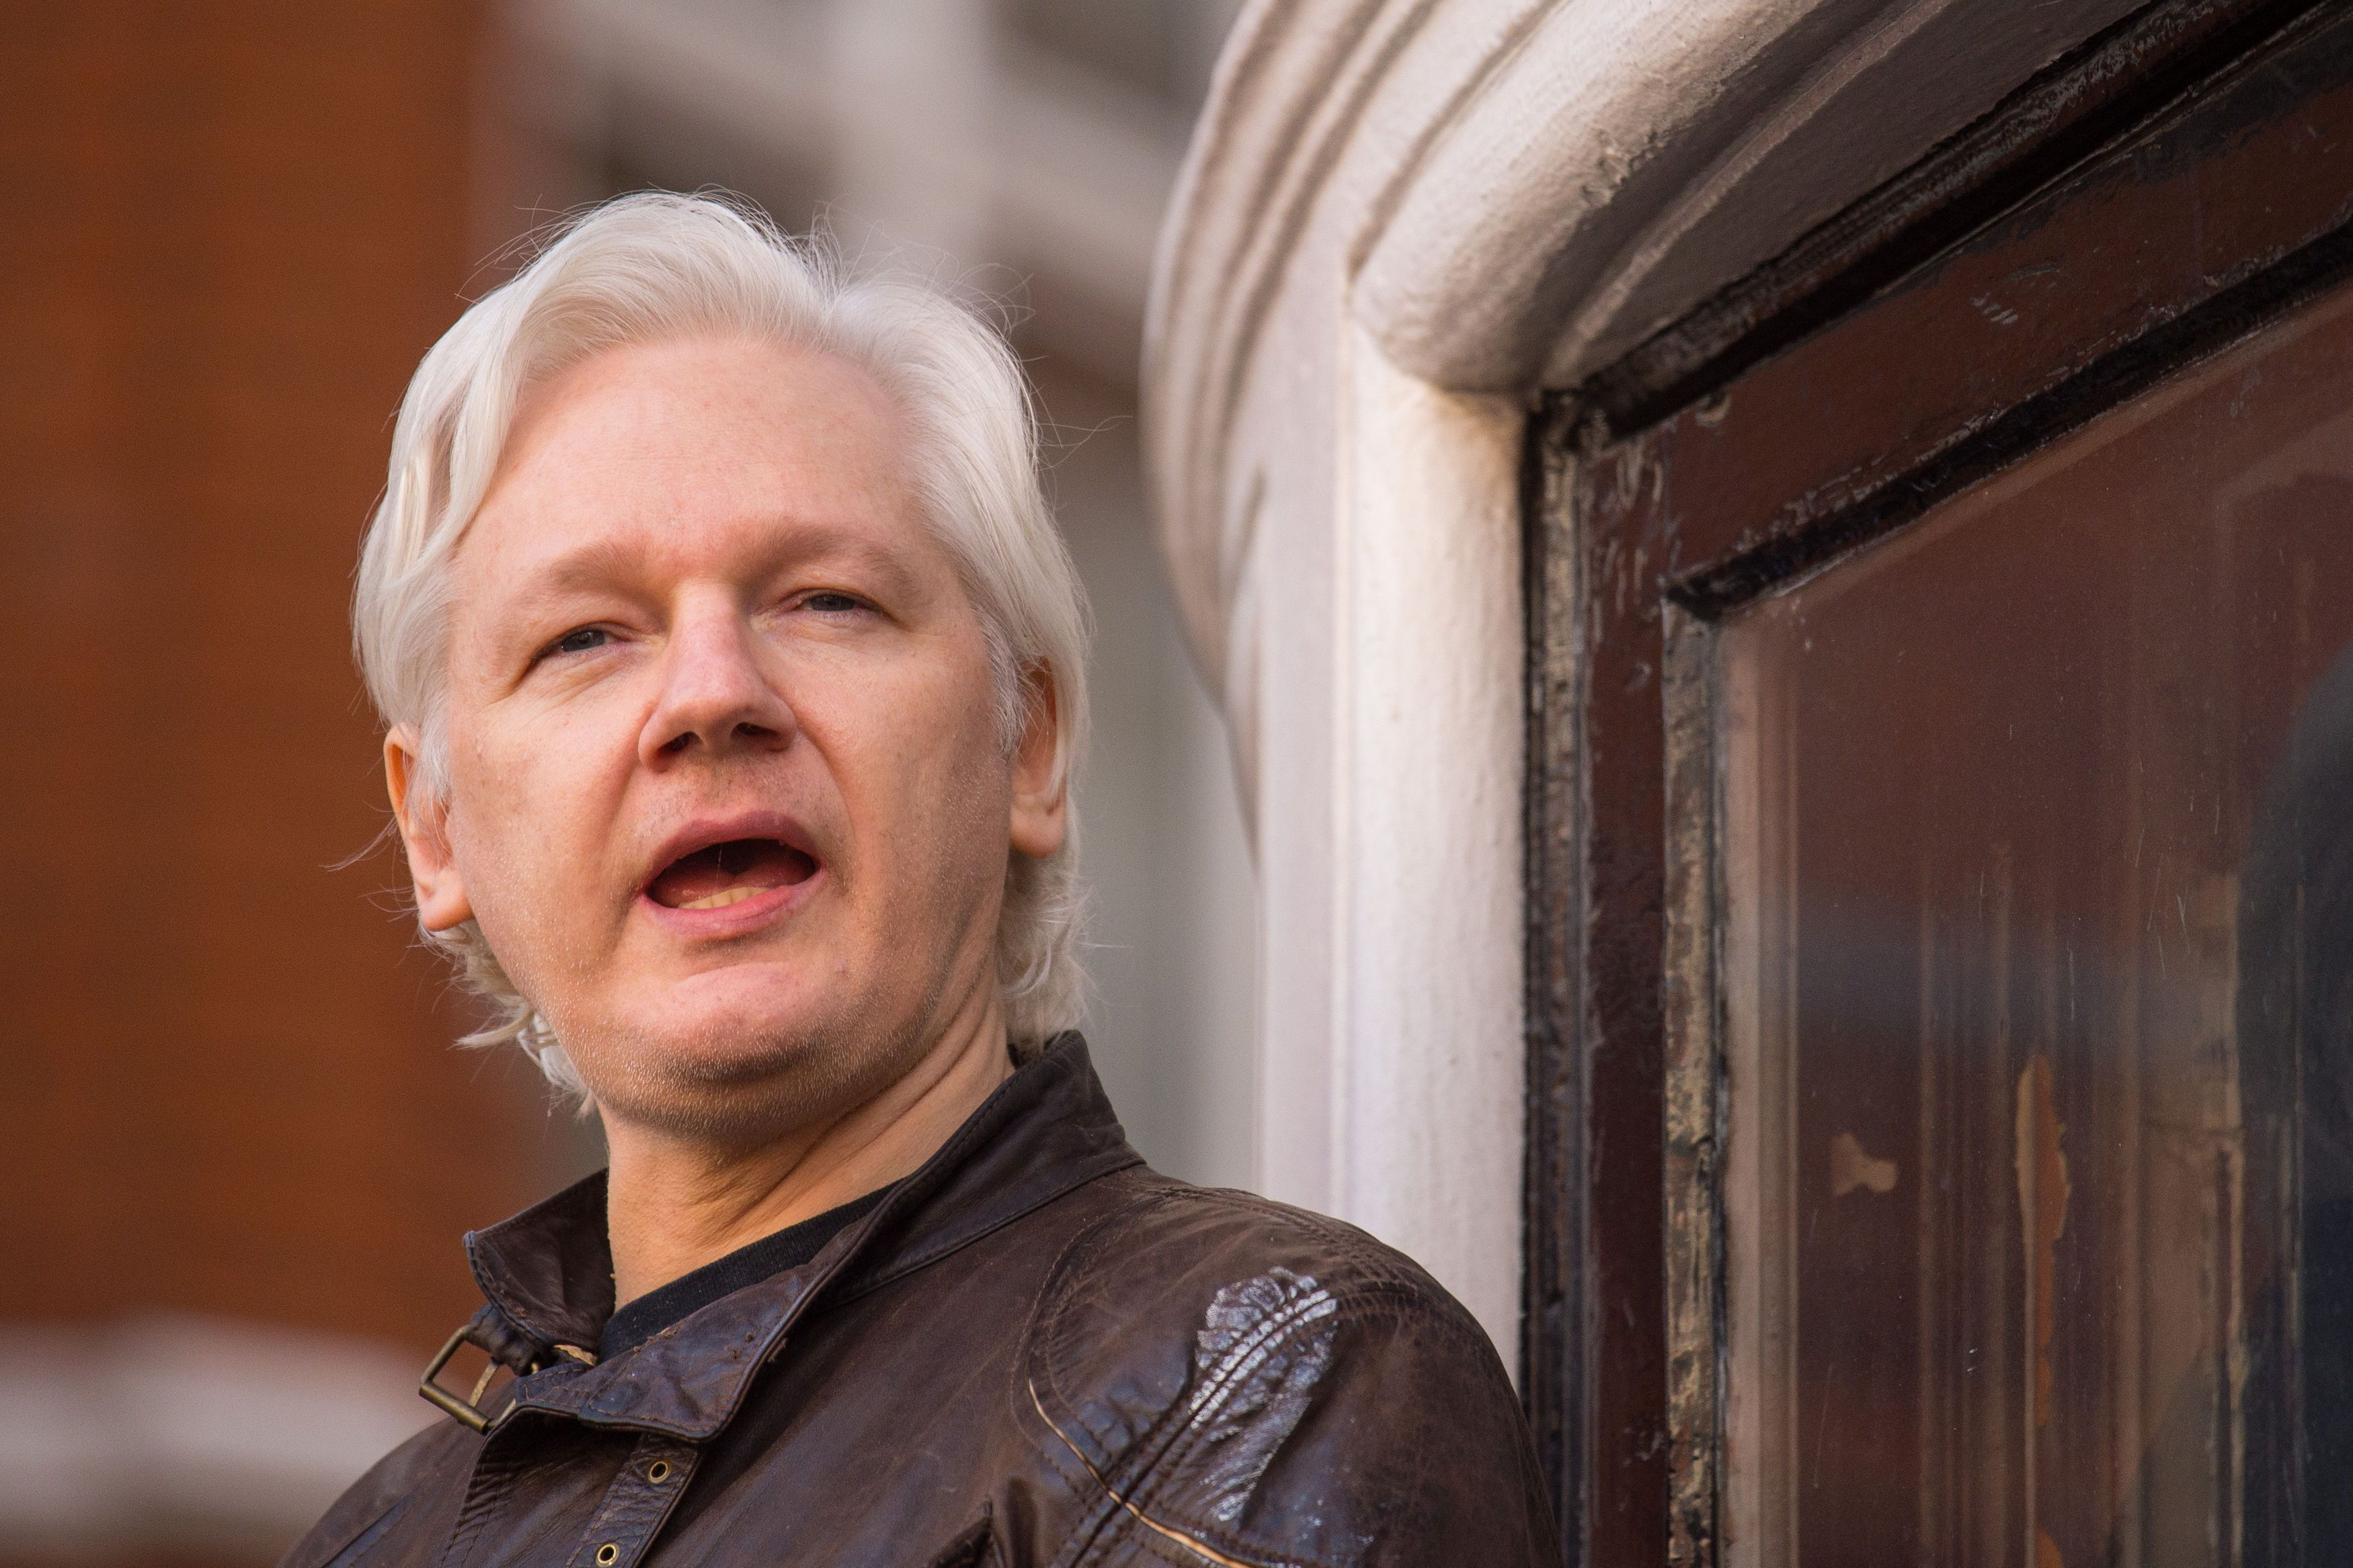 Ecuador close to evicting Wikileaks founder Julian Assange: Greenwald